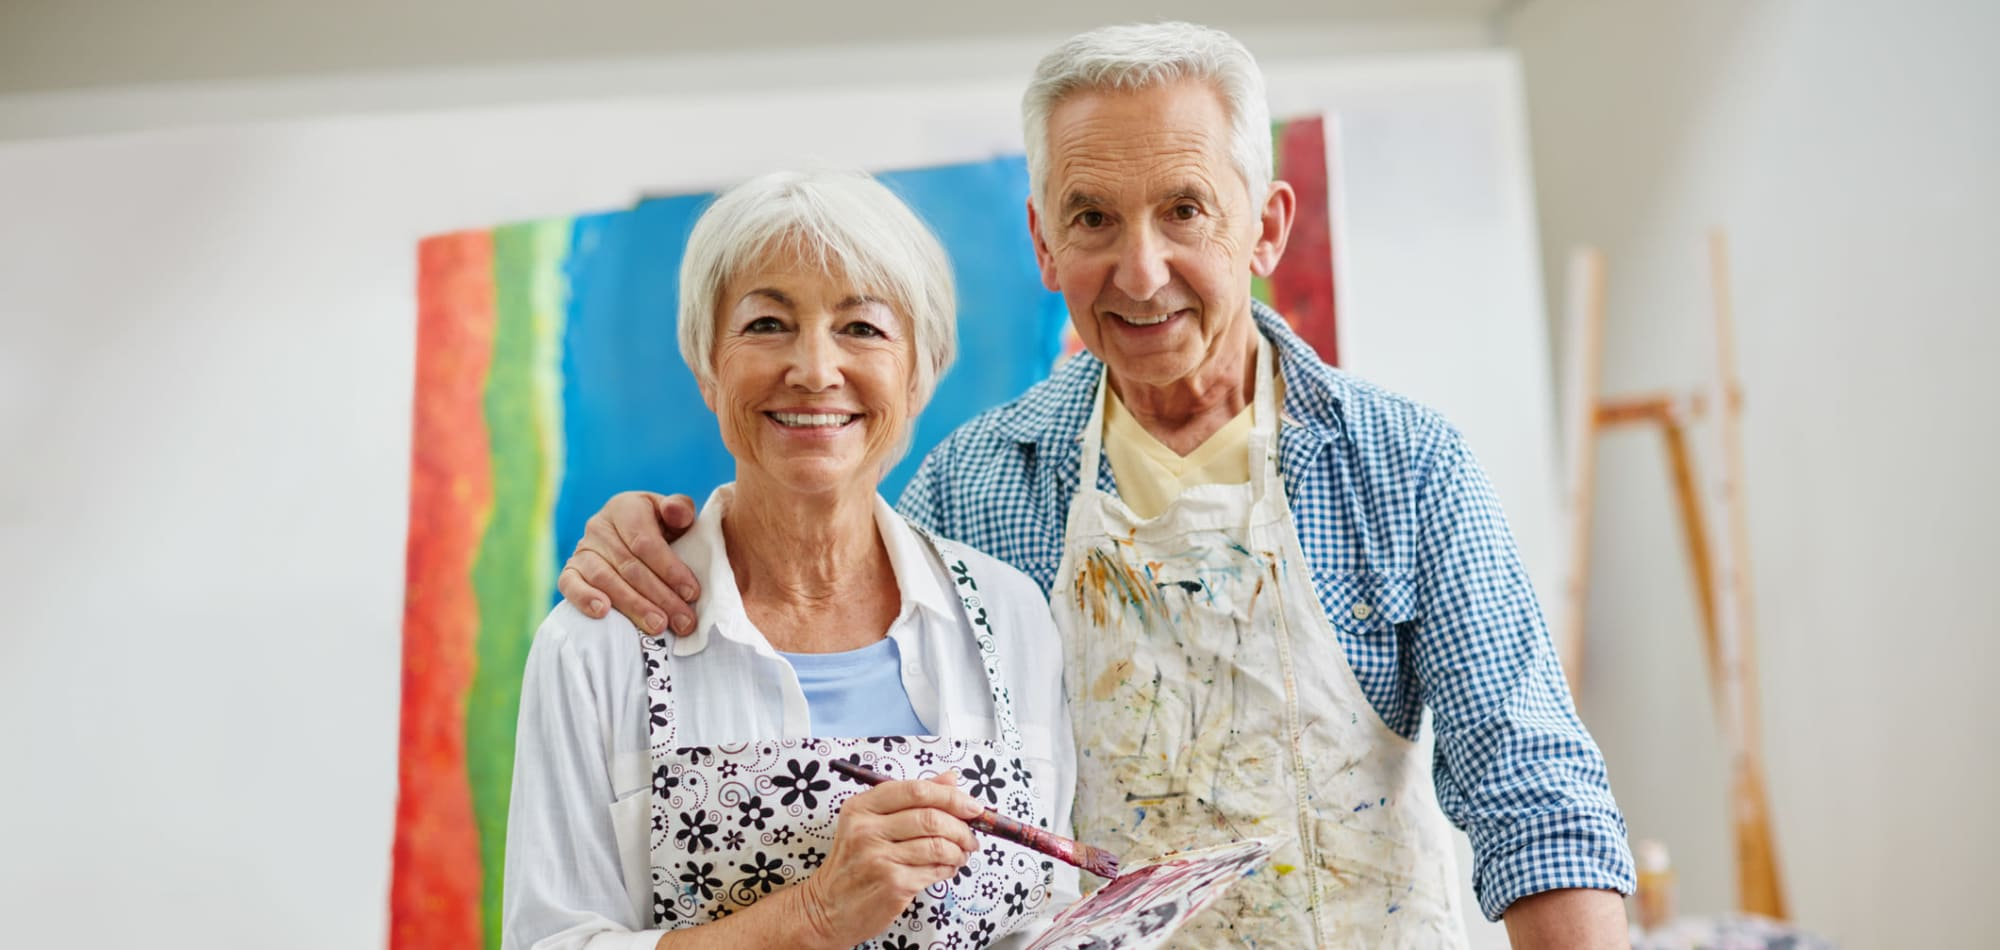 Arts and crafts activities for residents of Arbor Hills in Lakeland, Florida